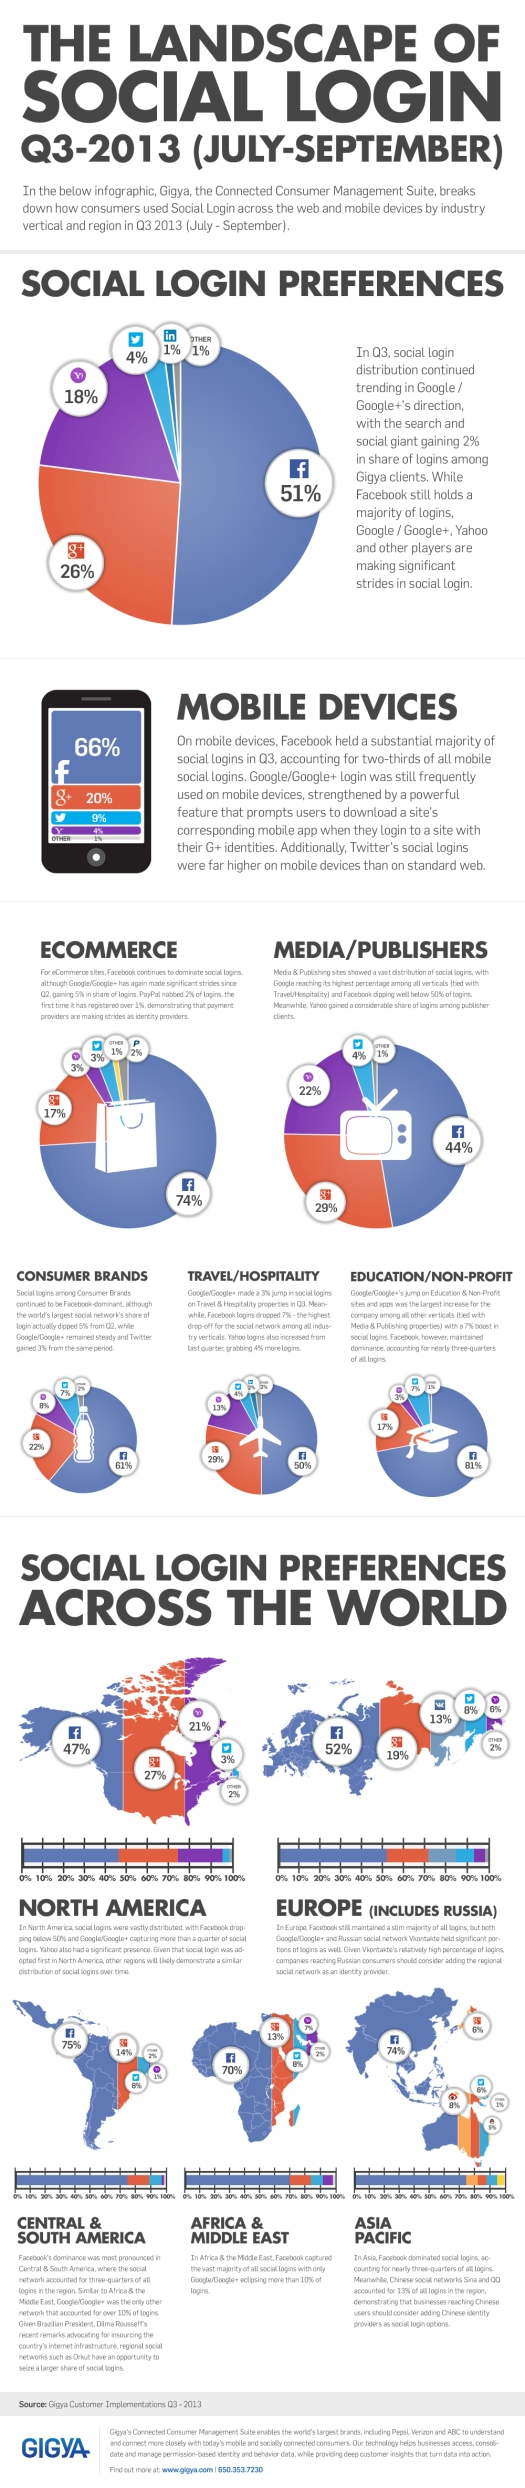 The Landscape of Social Login: The Identity War Heats Up « Gigya's Blog